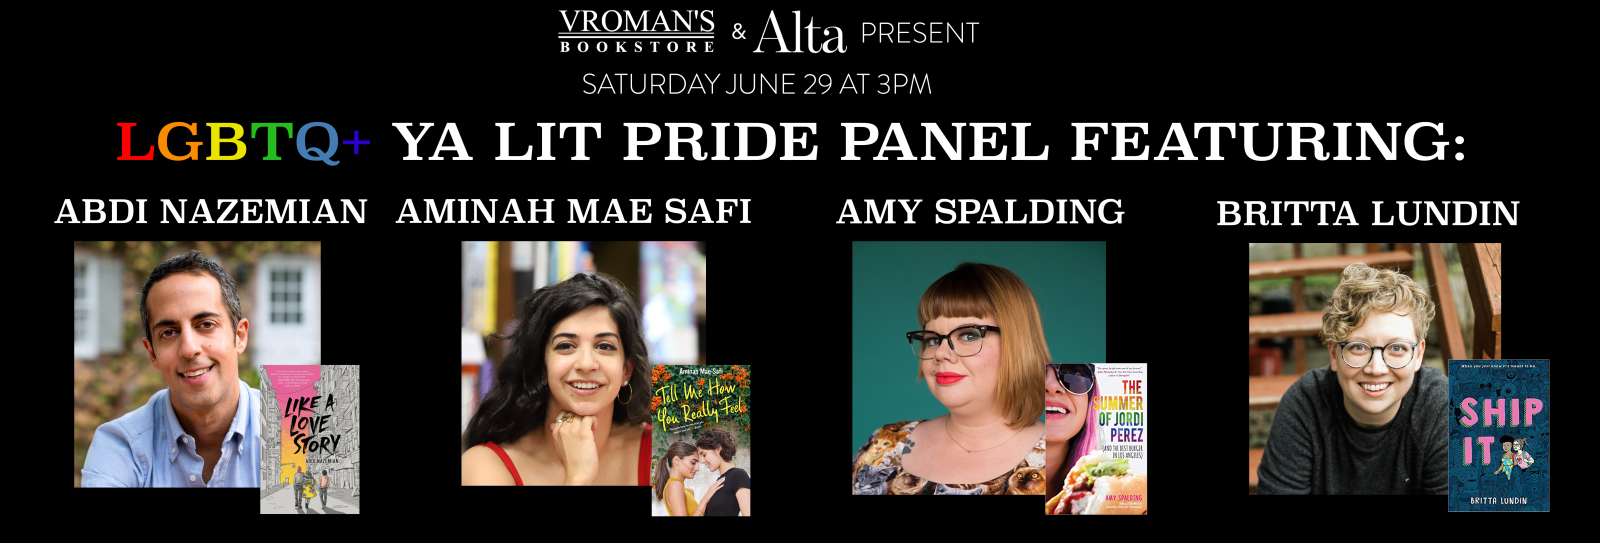 LGBTQ+ YA LIT PRIDE PANEL Saturday June 29 at 3pm